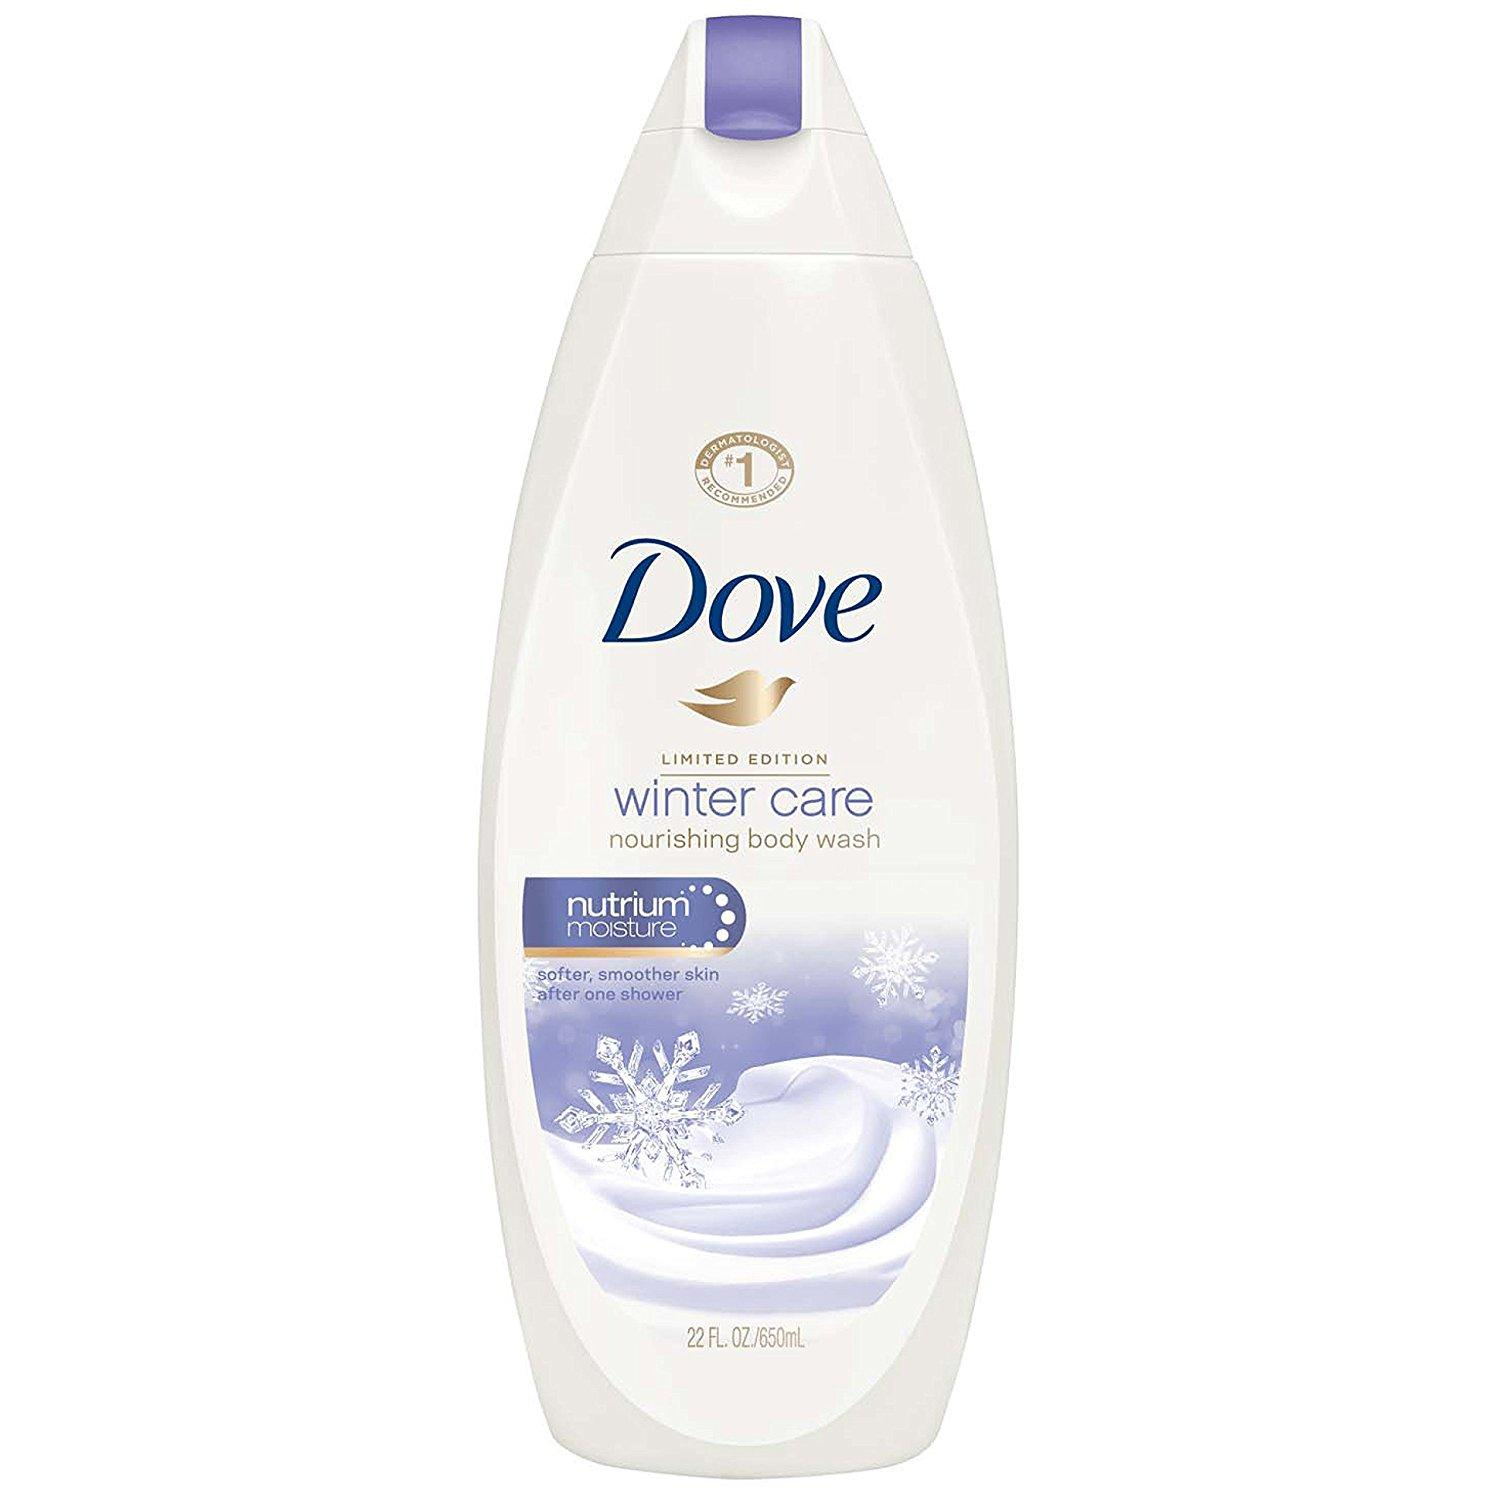 Amazon.com : Dove Body Wash, Winter Care 22 Oz, 4 Count